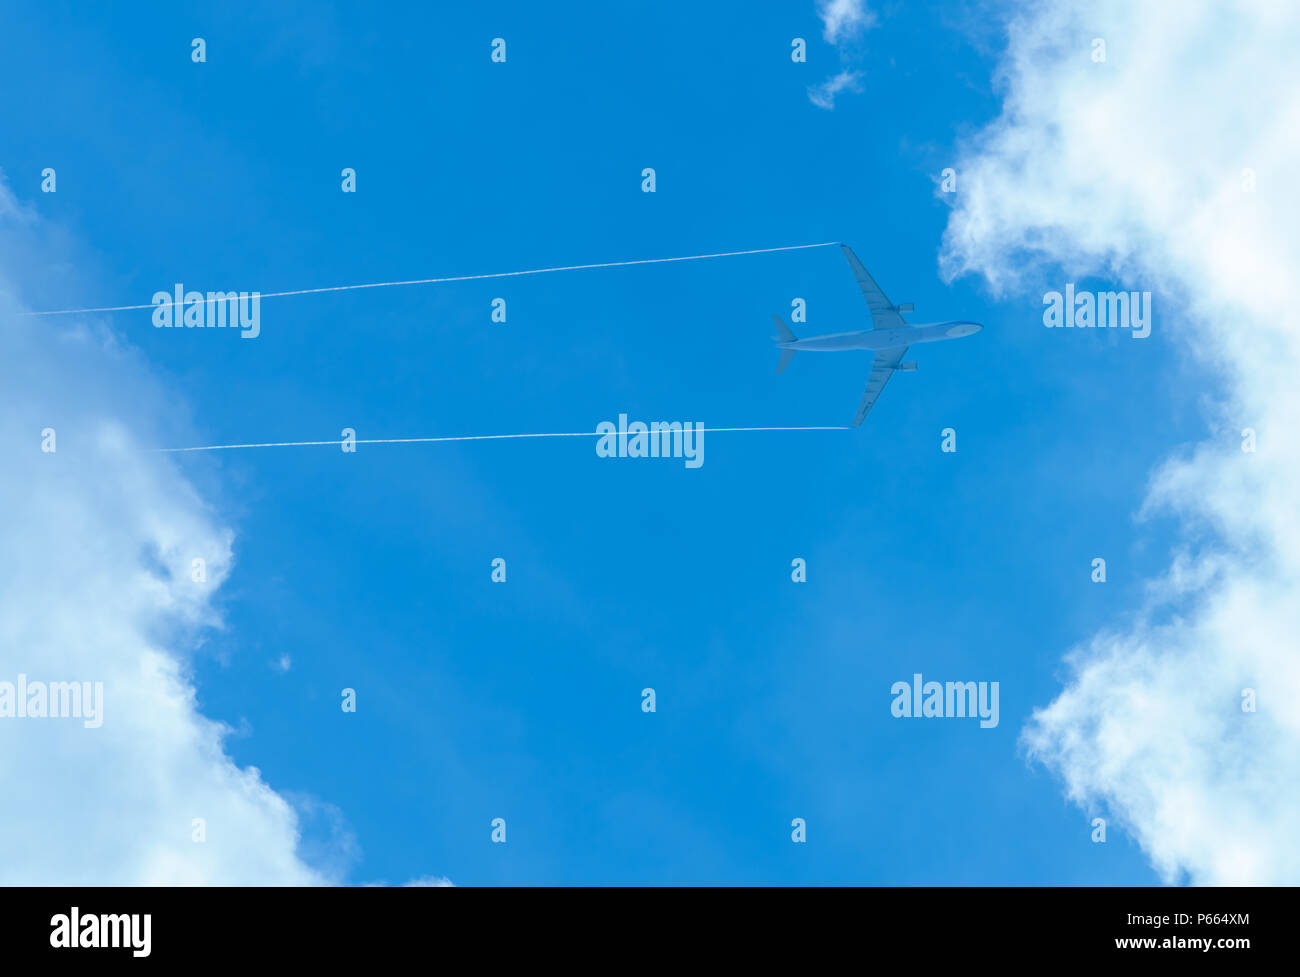 Airplane on blue sky and white clouds. Commercial airline flying on blue sky. Travel flight for vacation. Aviation transport. - Stock Image